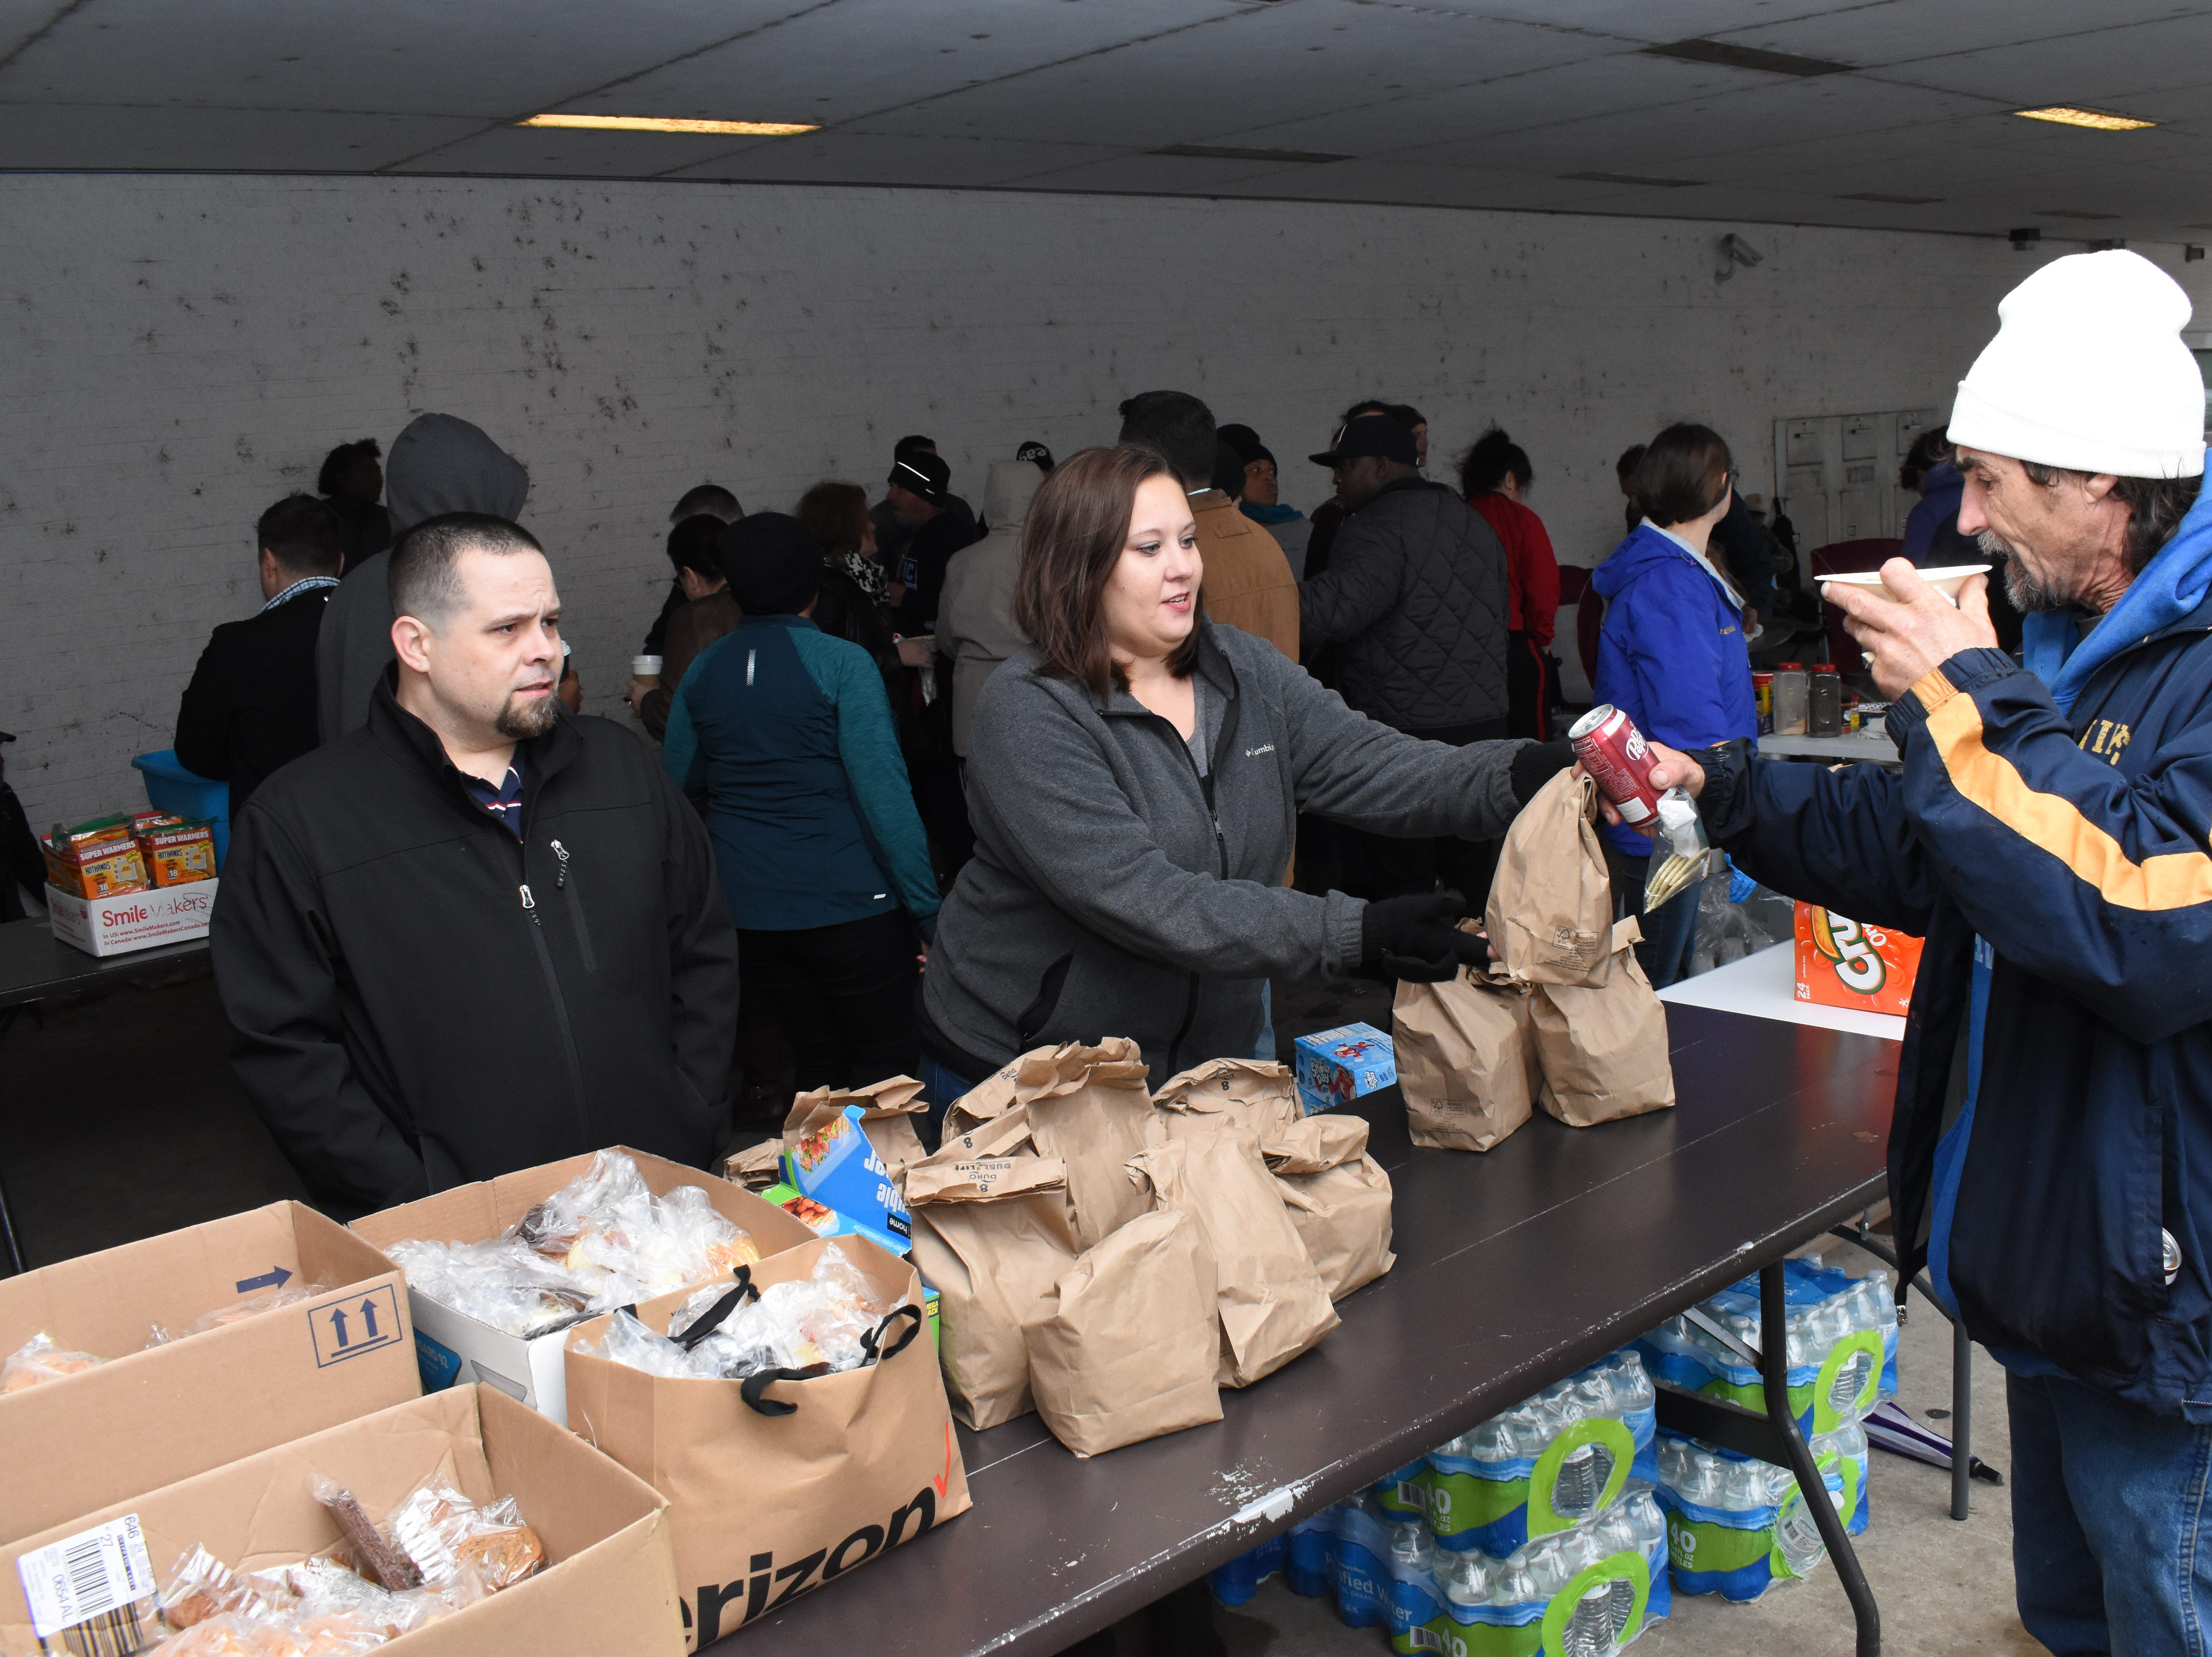 The Rapides Parish Healthy Initiatives Coalition held a gumbo luncheon for those in need Thursday, Dec. 20, 2018 in downtown Alexandria on the corner of Fourth and Desoto Streets in the car port belonging to Kinetix Solutions. Diane Tracy is the chair for the Rapides Parish Healthy Initiatives Coalition. They were expecting to feed about 200 people. In addition to gumbo, about 200 bagged lunches were provided along with extra items such as socks, hand warmers and blankets. Donating items and helping out were Antoon Hospitality Group; Amie Starks; Kitty Wynn; Central Louisiana Children's Cabinet; Pam Carey; Jennifer Gilchrist; Grace House; Esler Pentecostal pre-teen class; University Academy students; Bertha Smith with Project Success; LaTessa Mathews; We Care Behavioral Health and a number of other volunteers.